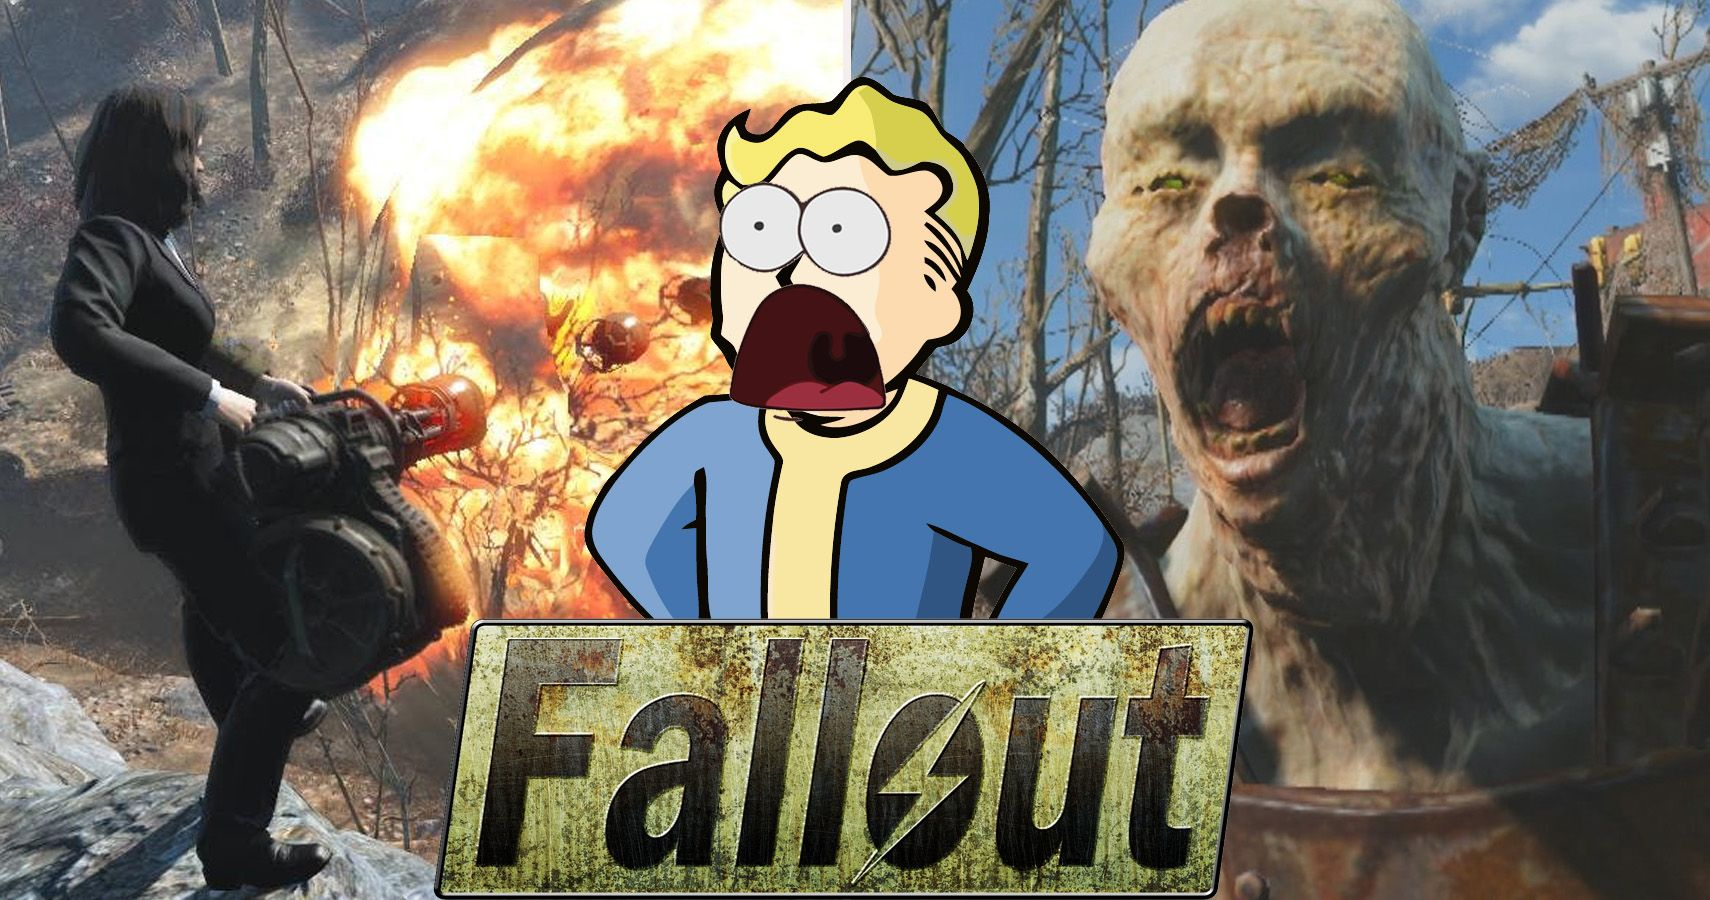 The Most Messed Up Things You Can Do In Fallout 4 | TheGamer